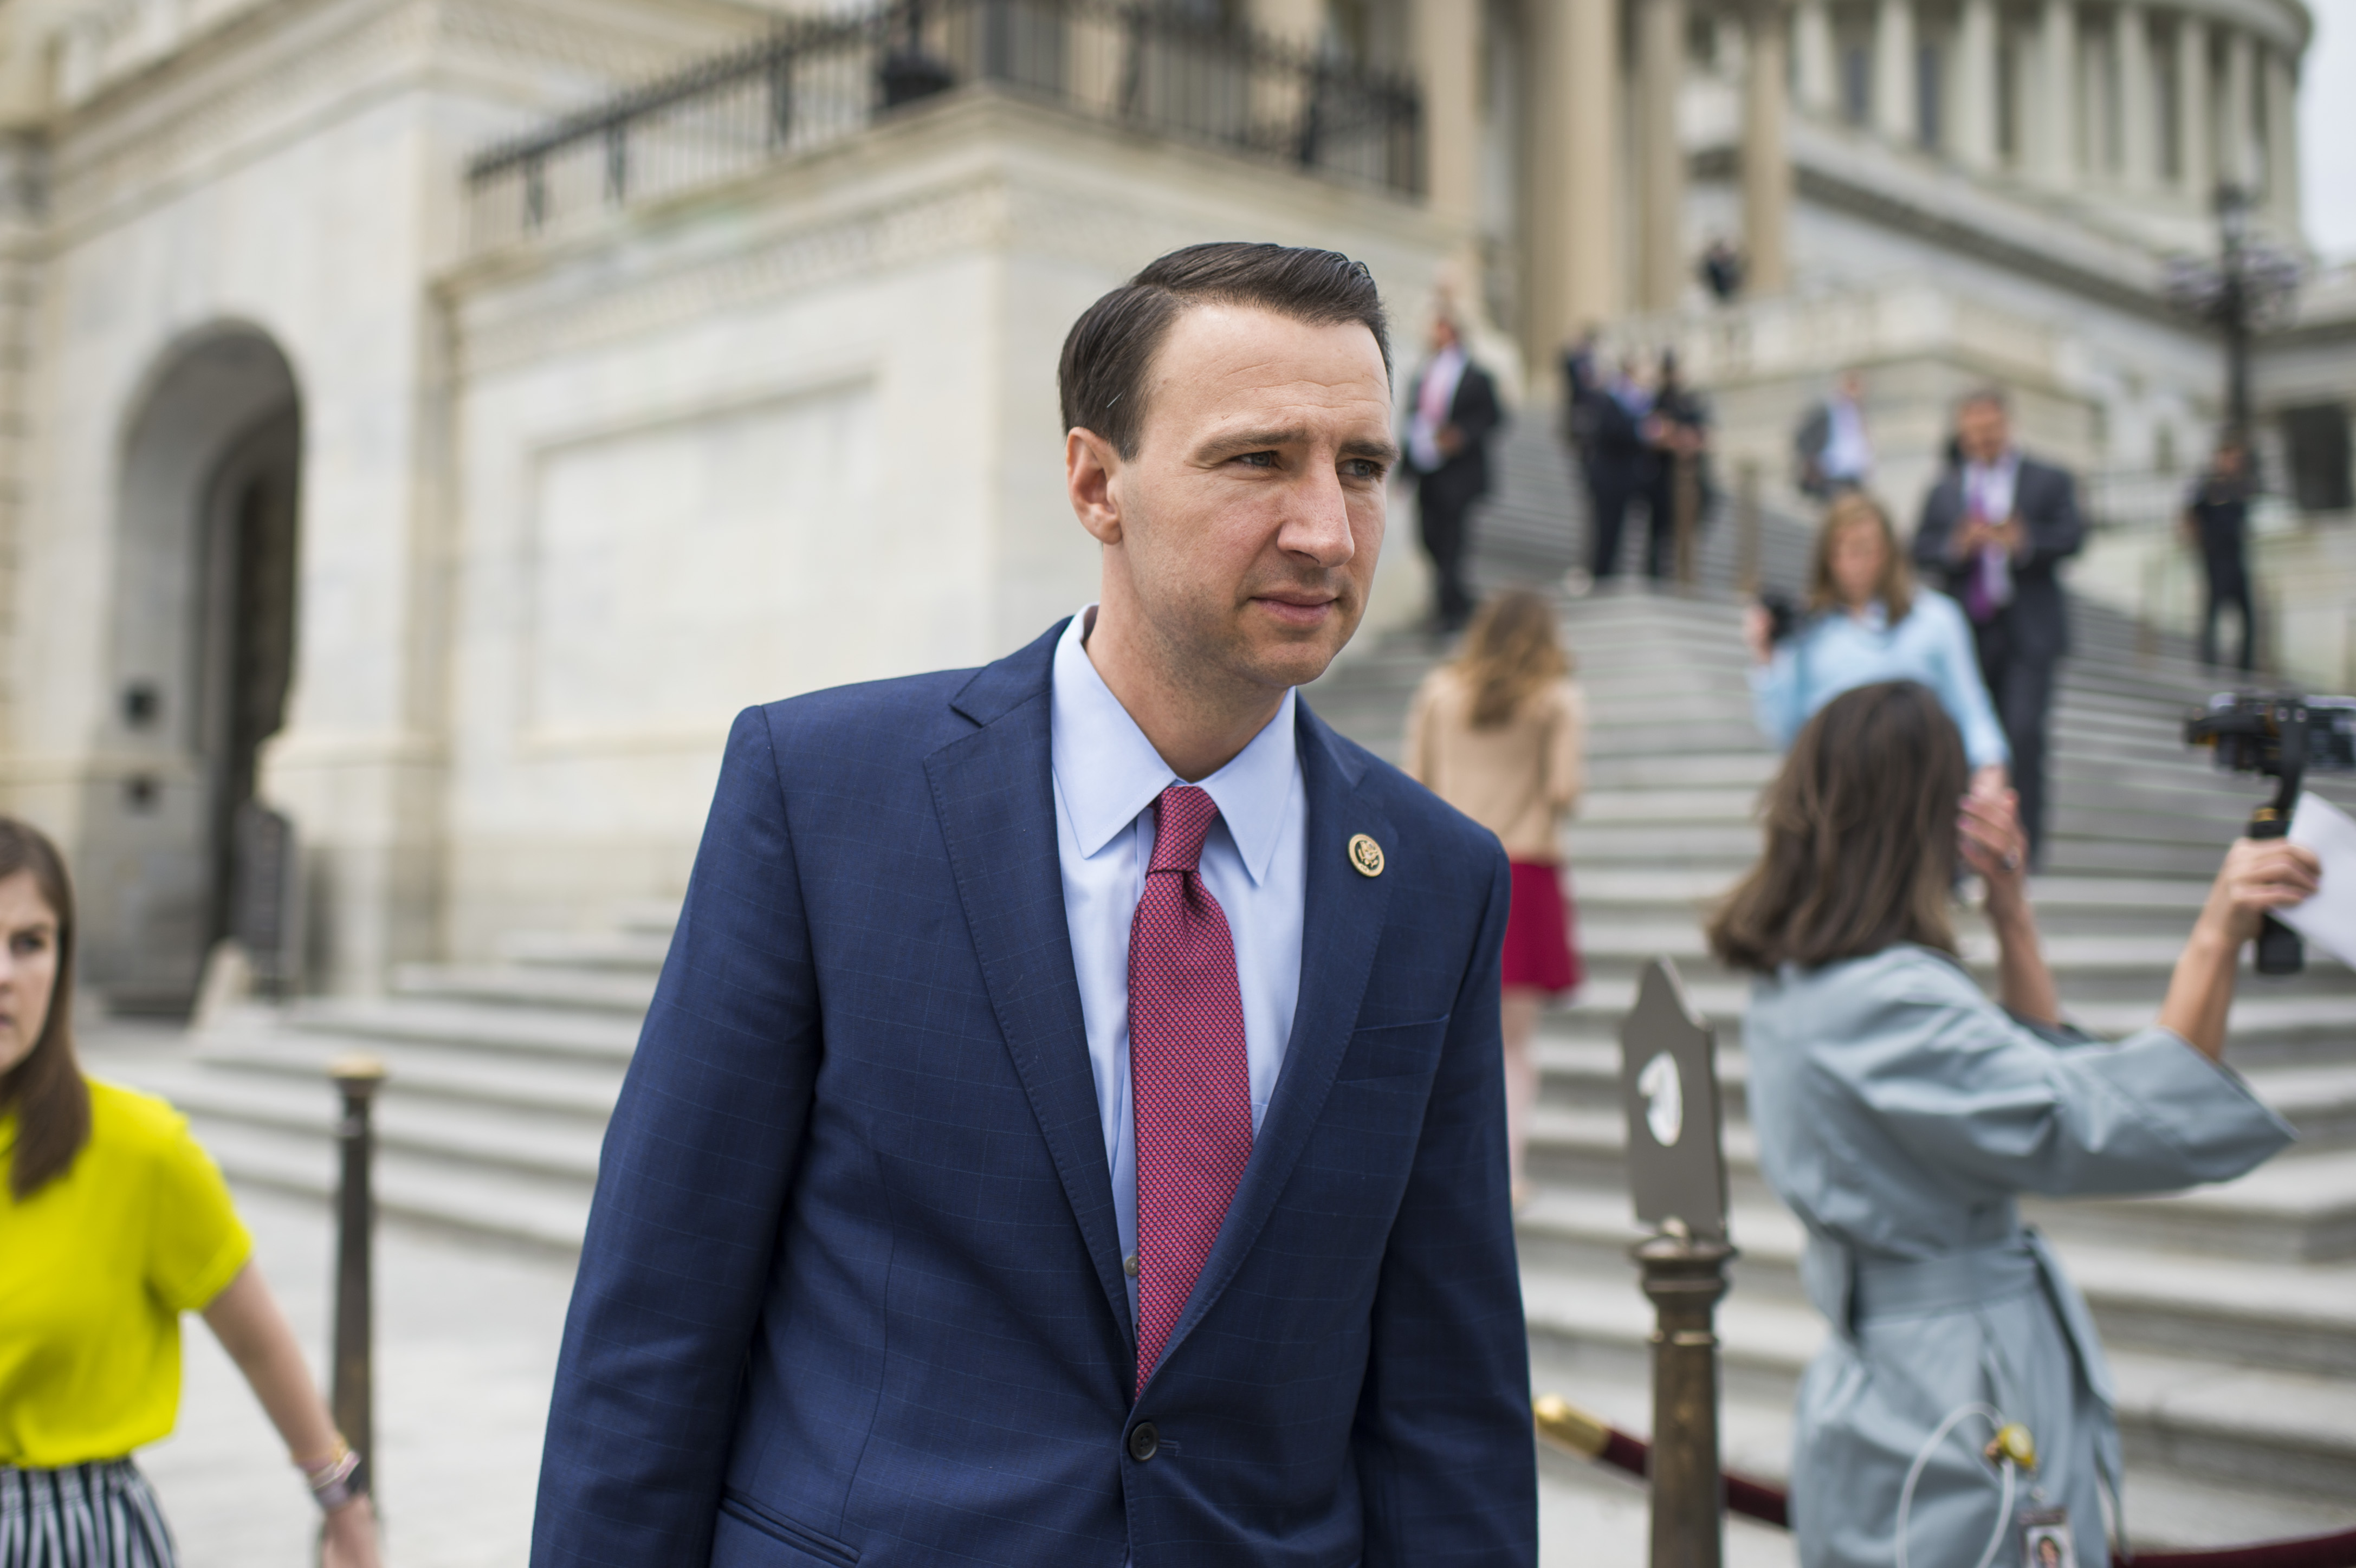 UNITED STATES - MAY 4: Rep. Ryan Costello, R-Pa., leaves the Capitol after the House passed the Republicans' bill to repeal and replace the Affordable Care Act on May 4, 2017. (Photo By Tom Williams/CQ Roll Call)